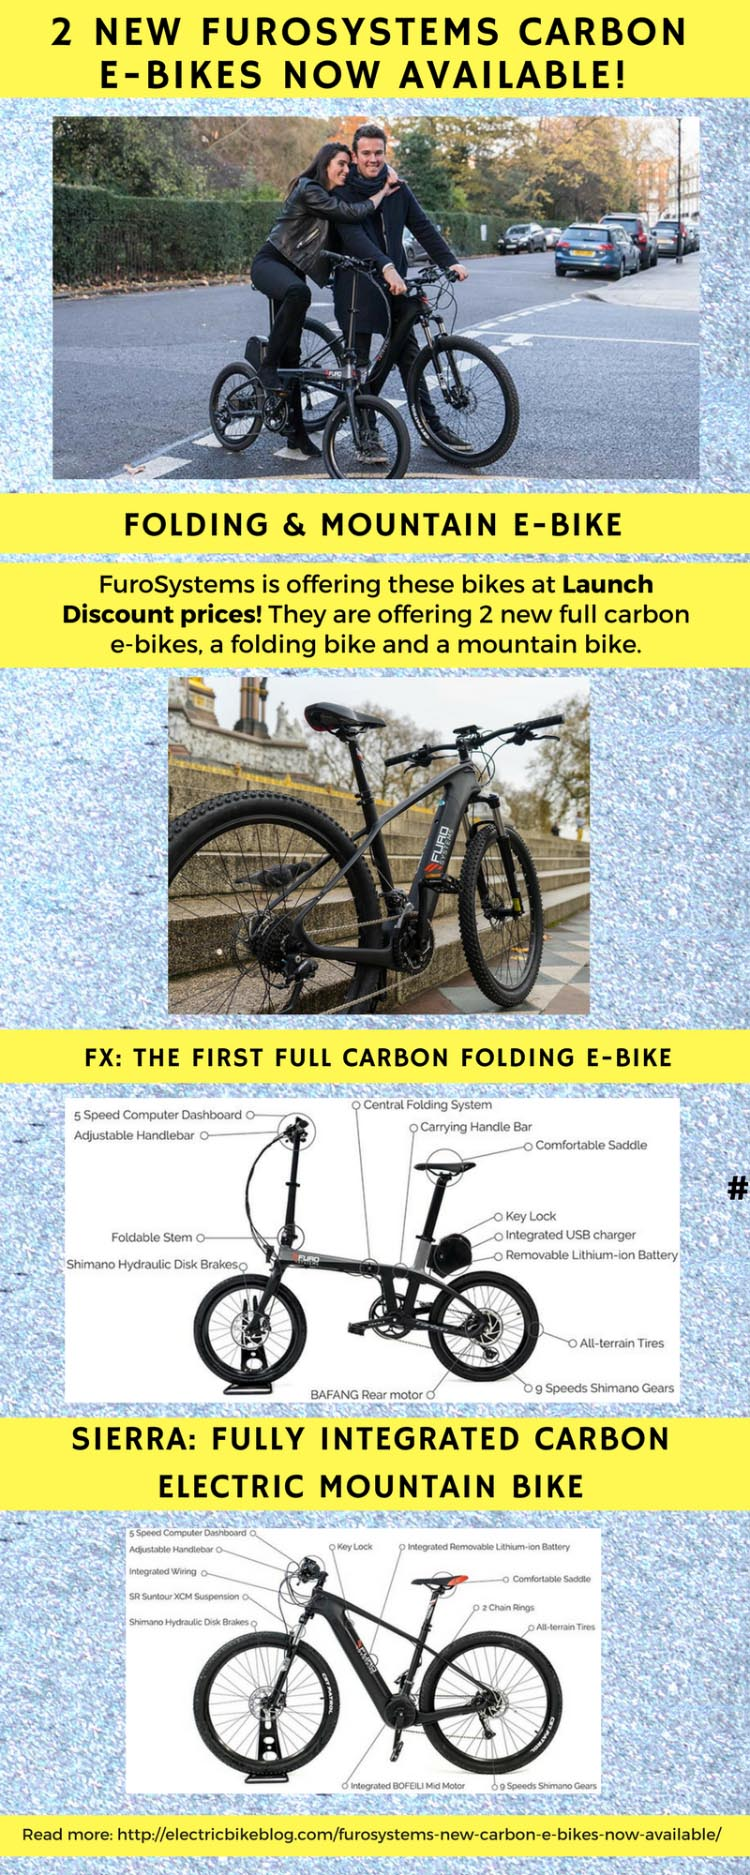 Furosystems new carbon e-bikes now for sale at discounted launch prices